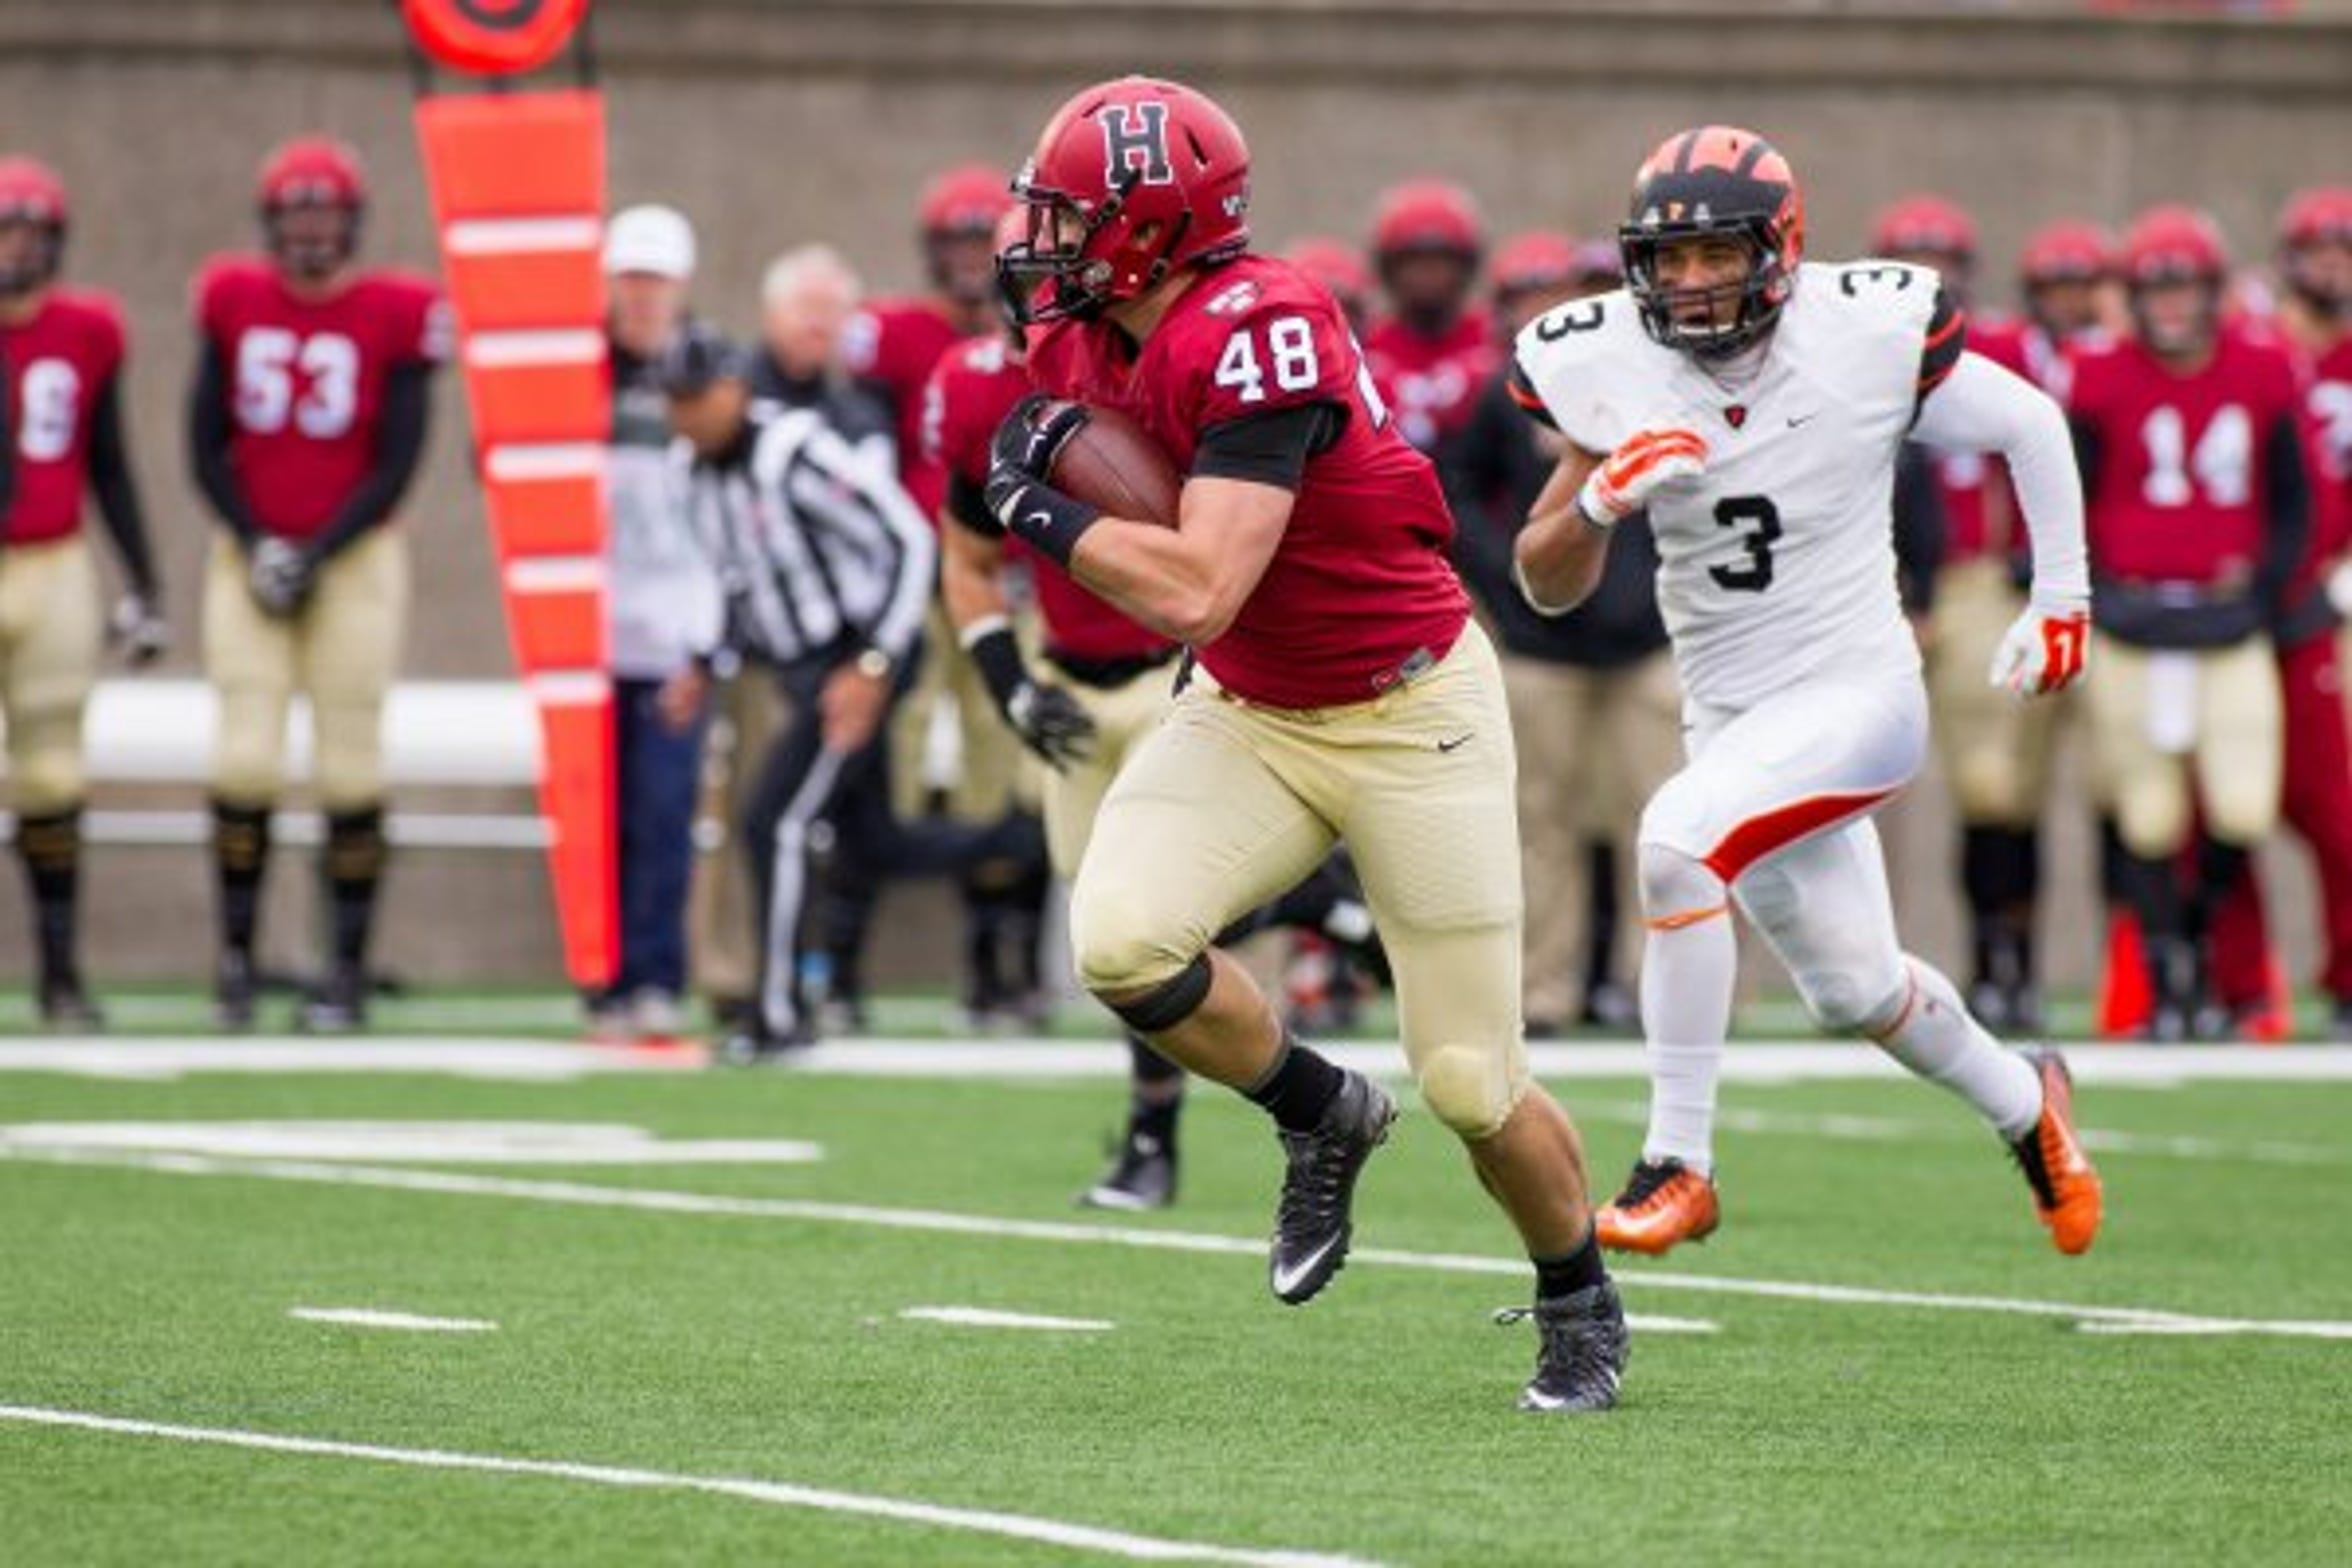 Ben Braunecker runs after catching a pass during his time with the Harvard Crimson.